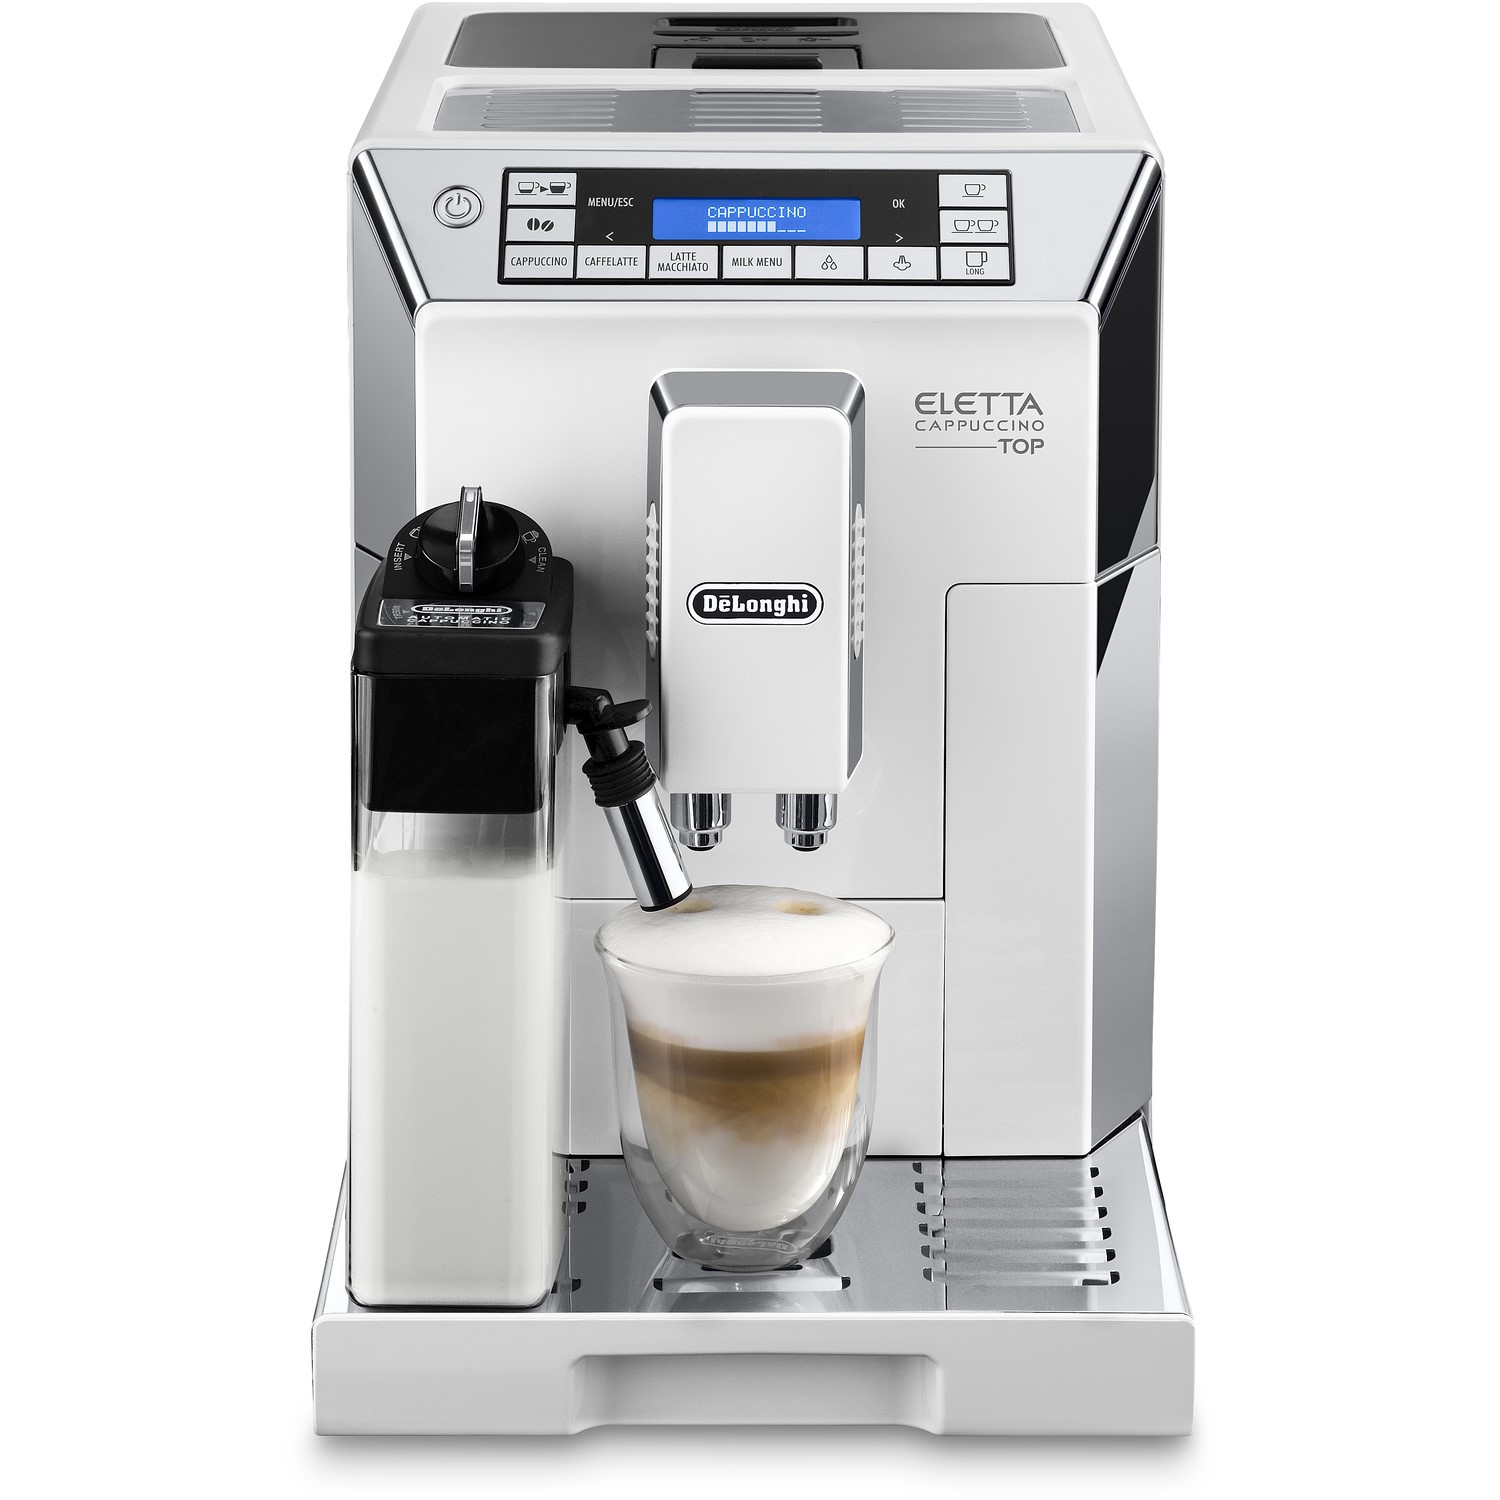 Delonghi Ecam45760w Eletta Cappuccino Top Bean To Cup Automatic Coffee Machine With Grinder Frother White